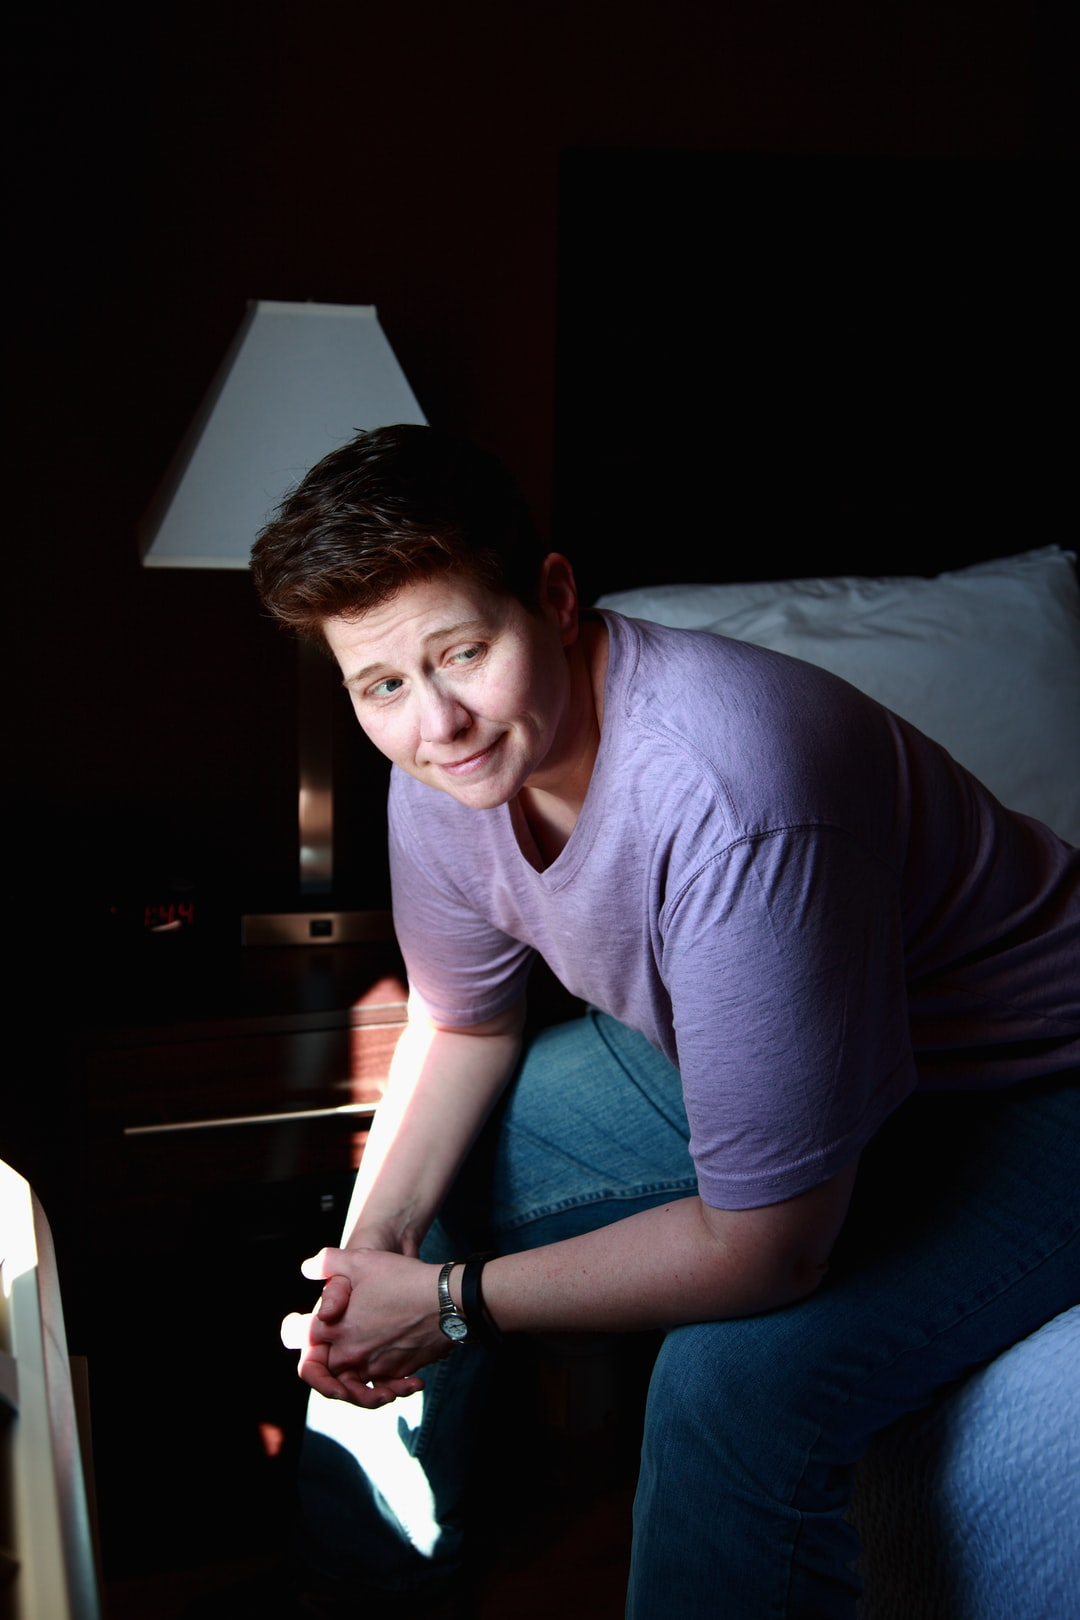 Shane smiling at the hotel in window light.